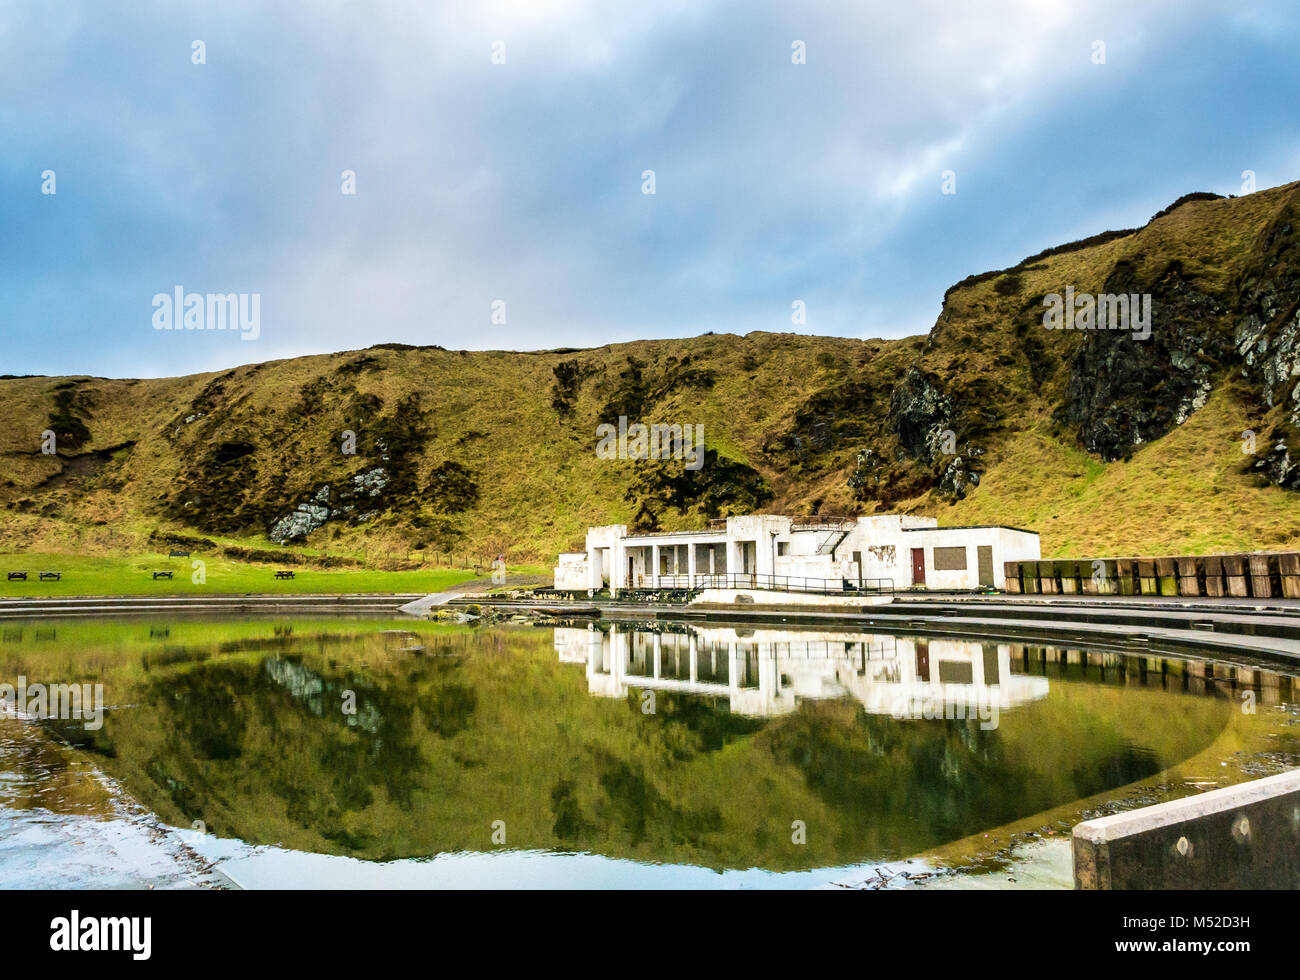 Tarlair Swimming Pool High Resolution Stock Photography And Images Alamy